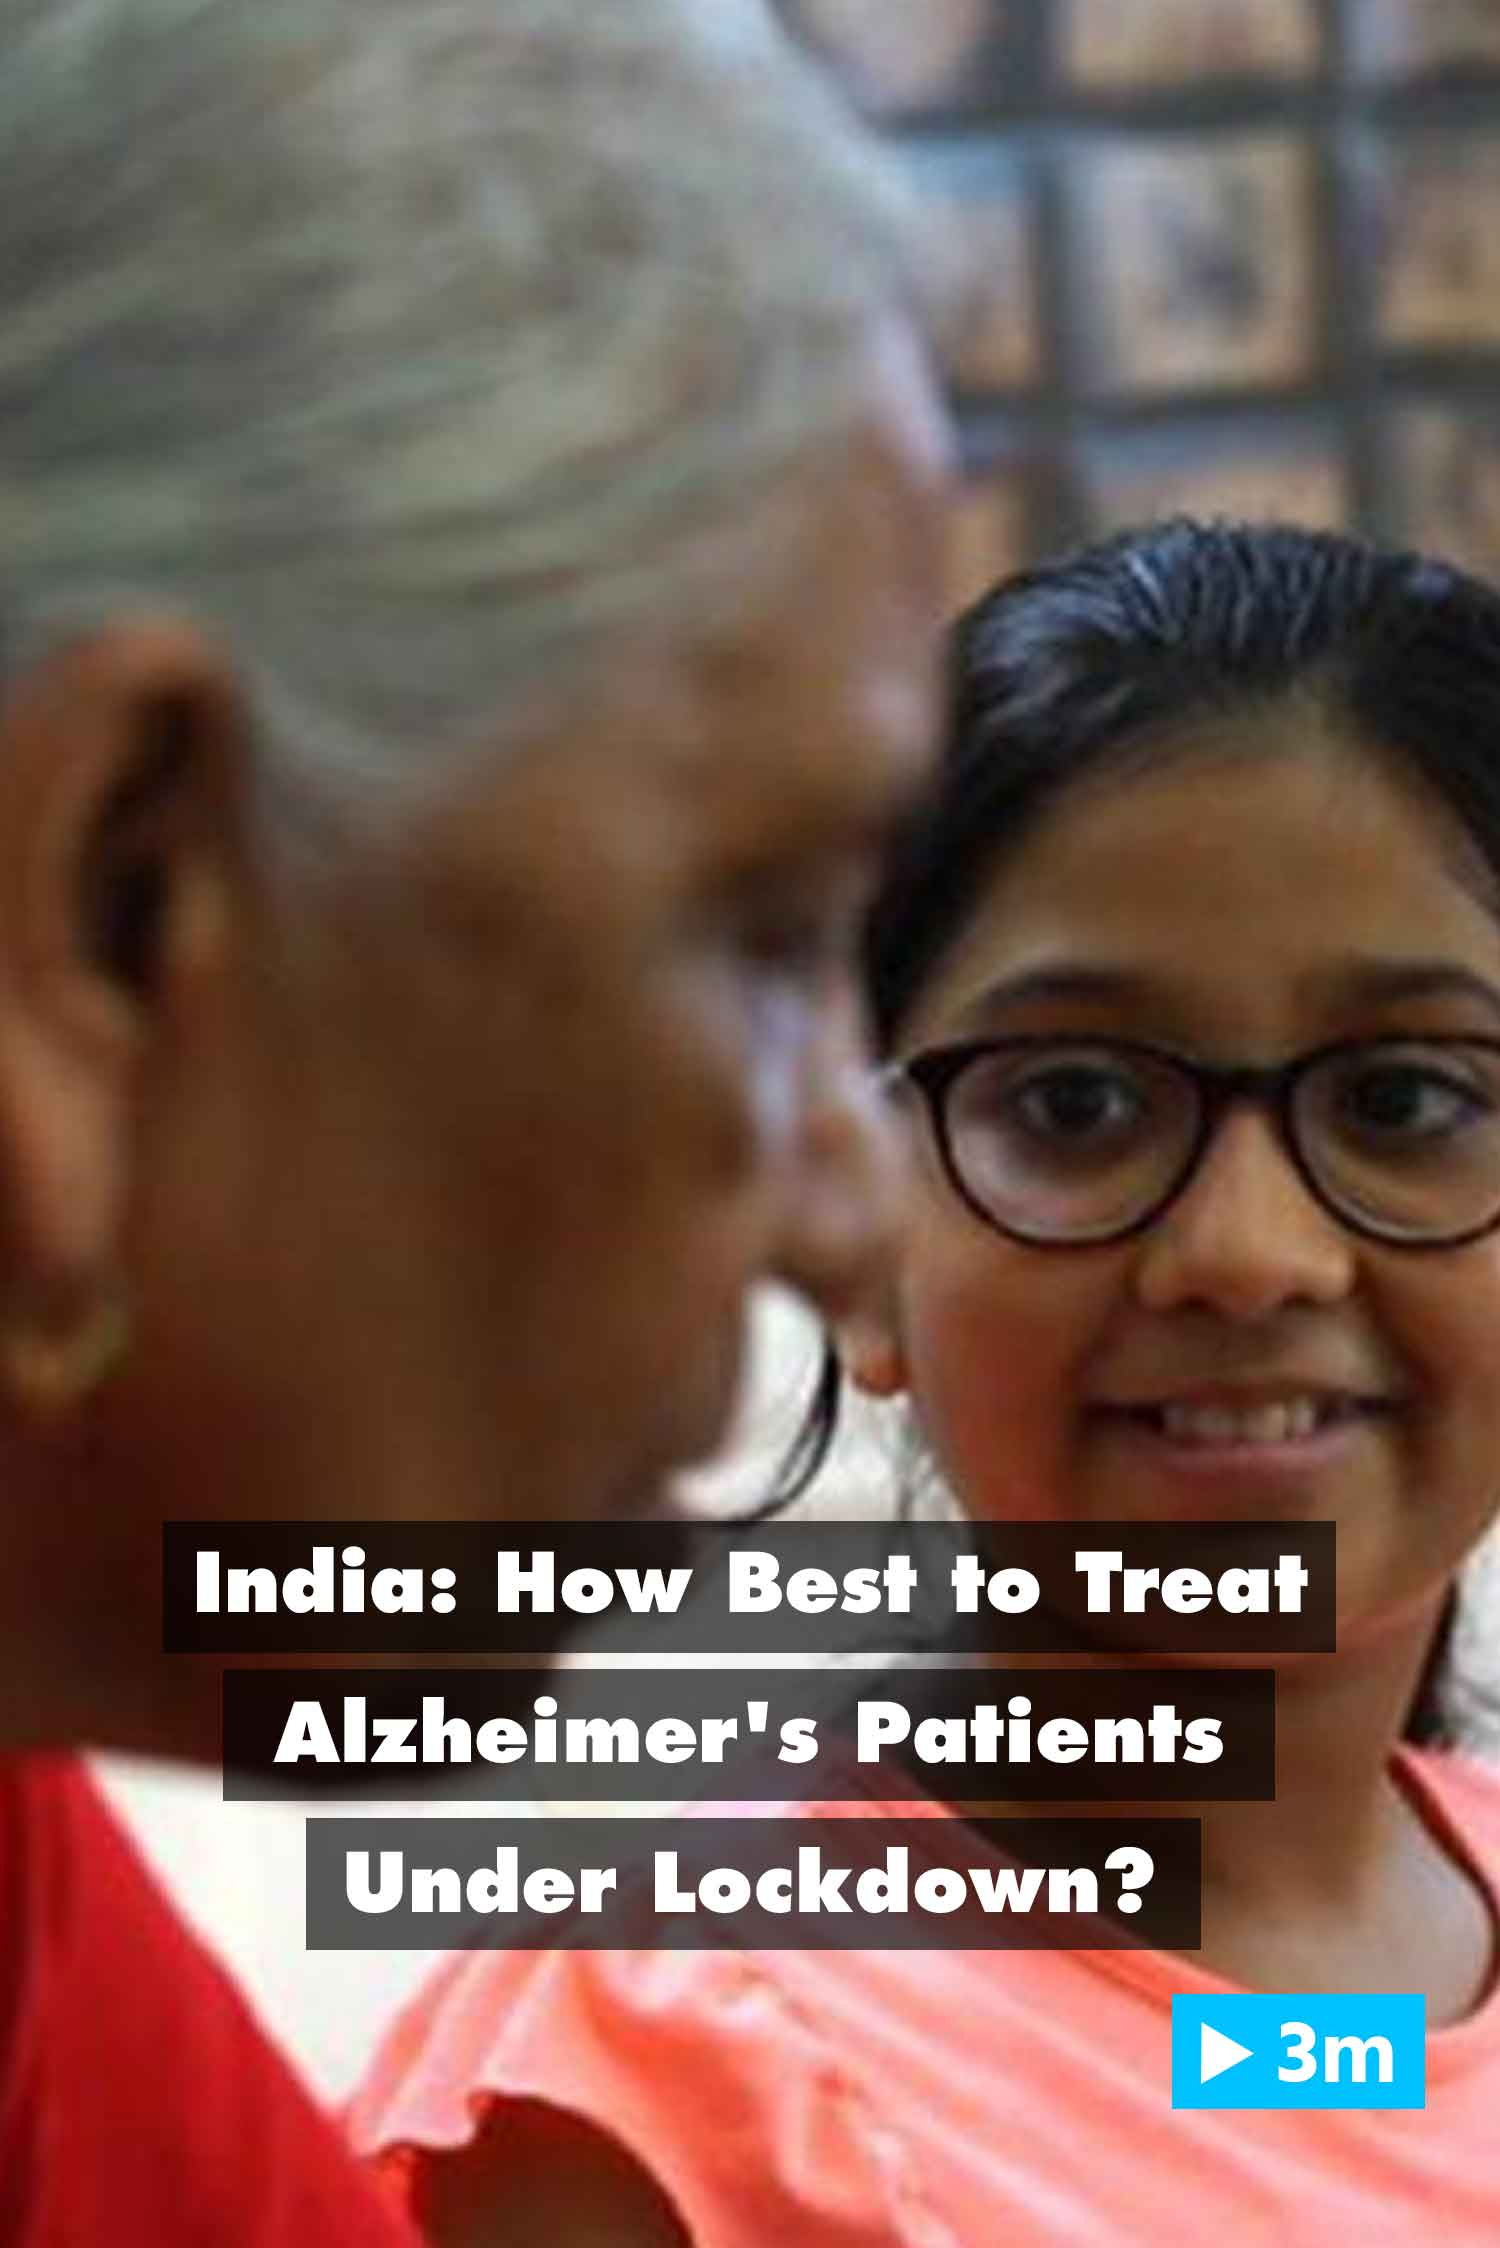 Editor's Choice: India: How best to treat Alzheimer's patients under lockdown?